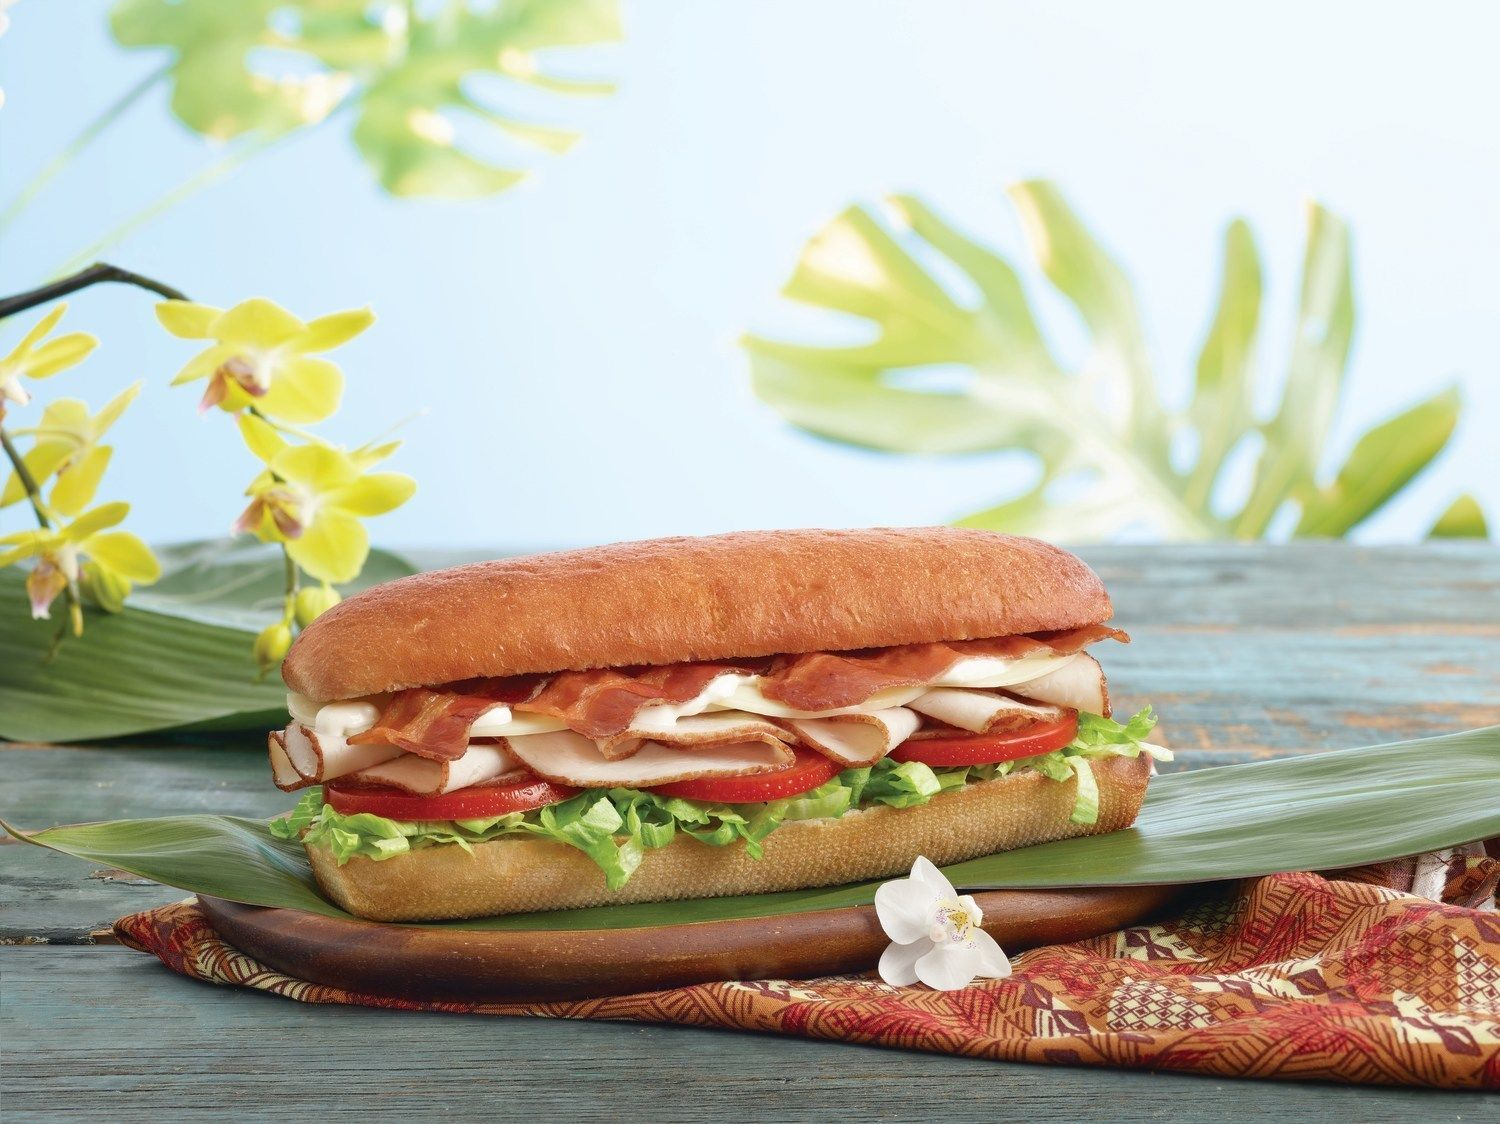 A New Bread Is Rising: King's Hawaiian Freshly Baked Bread Only at Subway Hits Market Test; Iconic Brands Partner in an Exclusive Innovation